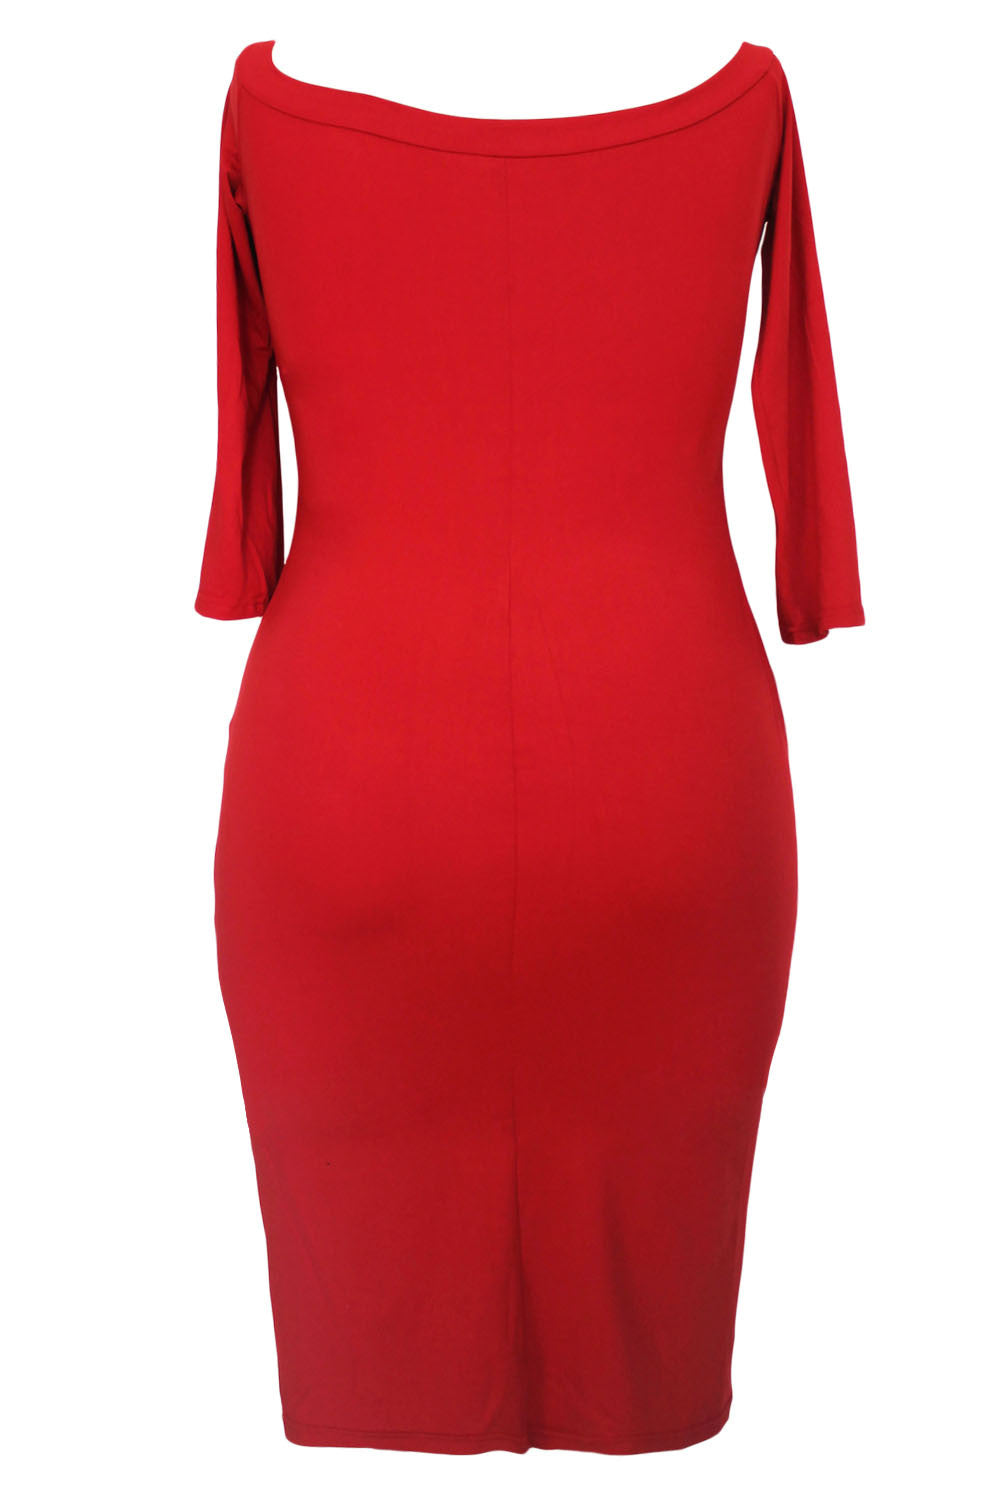 Jahnell's Closet Red Bodycon - Jahnell's Closet